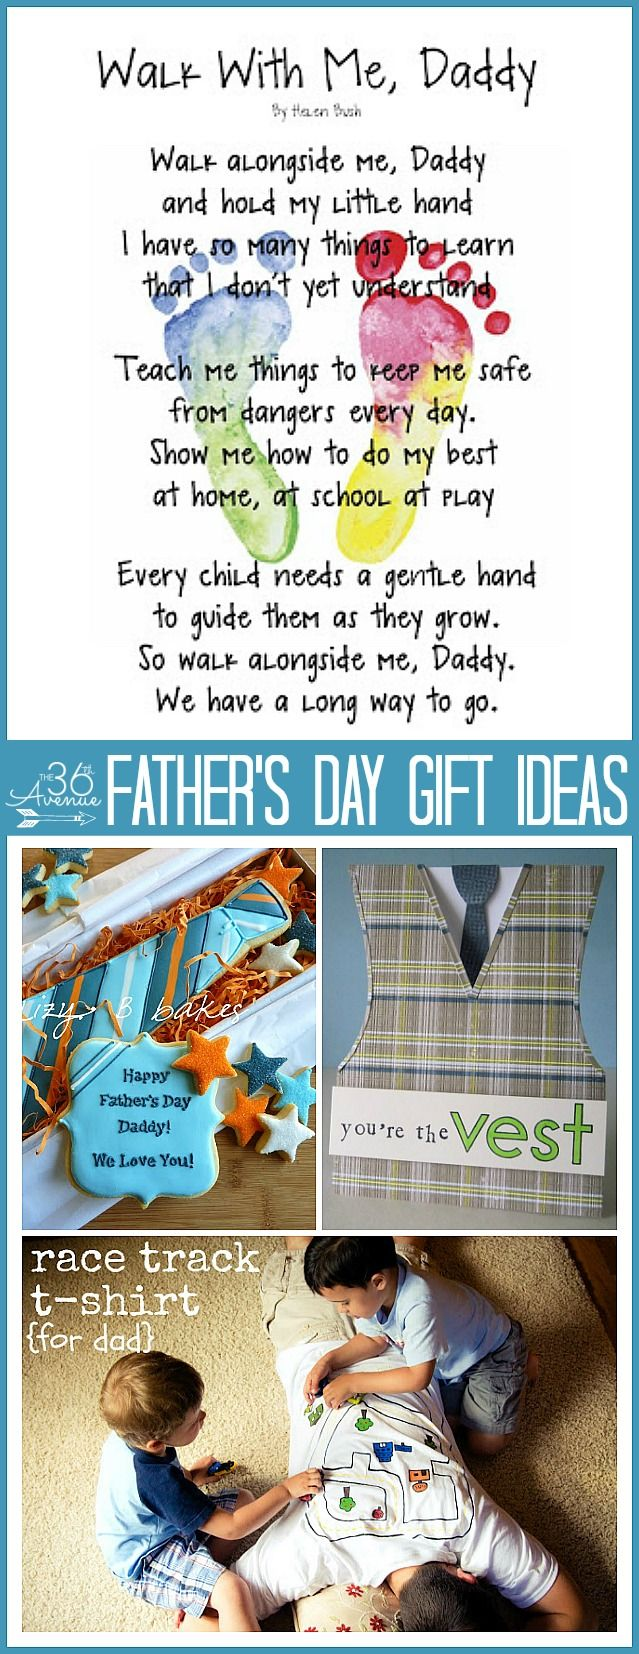 The 36th Avenue: Last Minute Father's Day Gifts and Ideas ... So many cute handmade gift ideas!